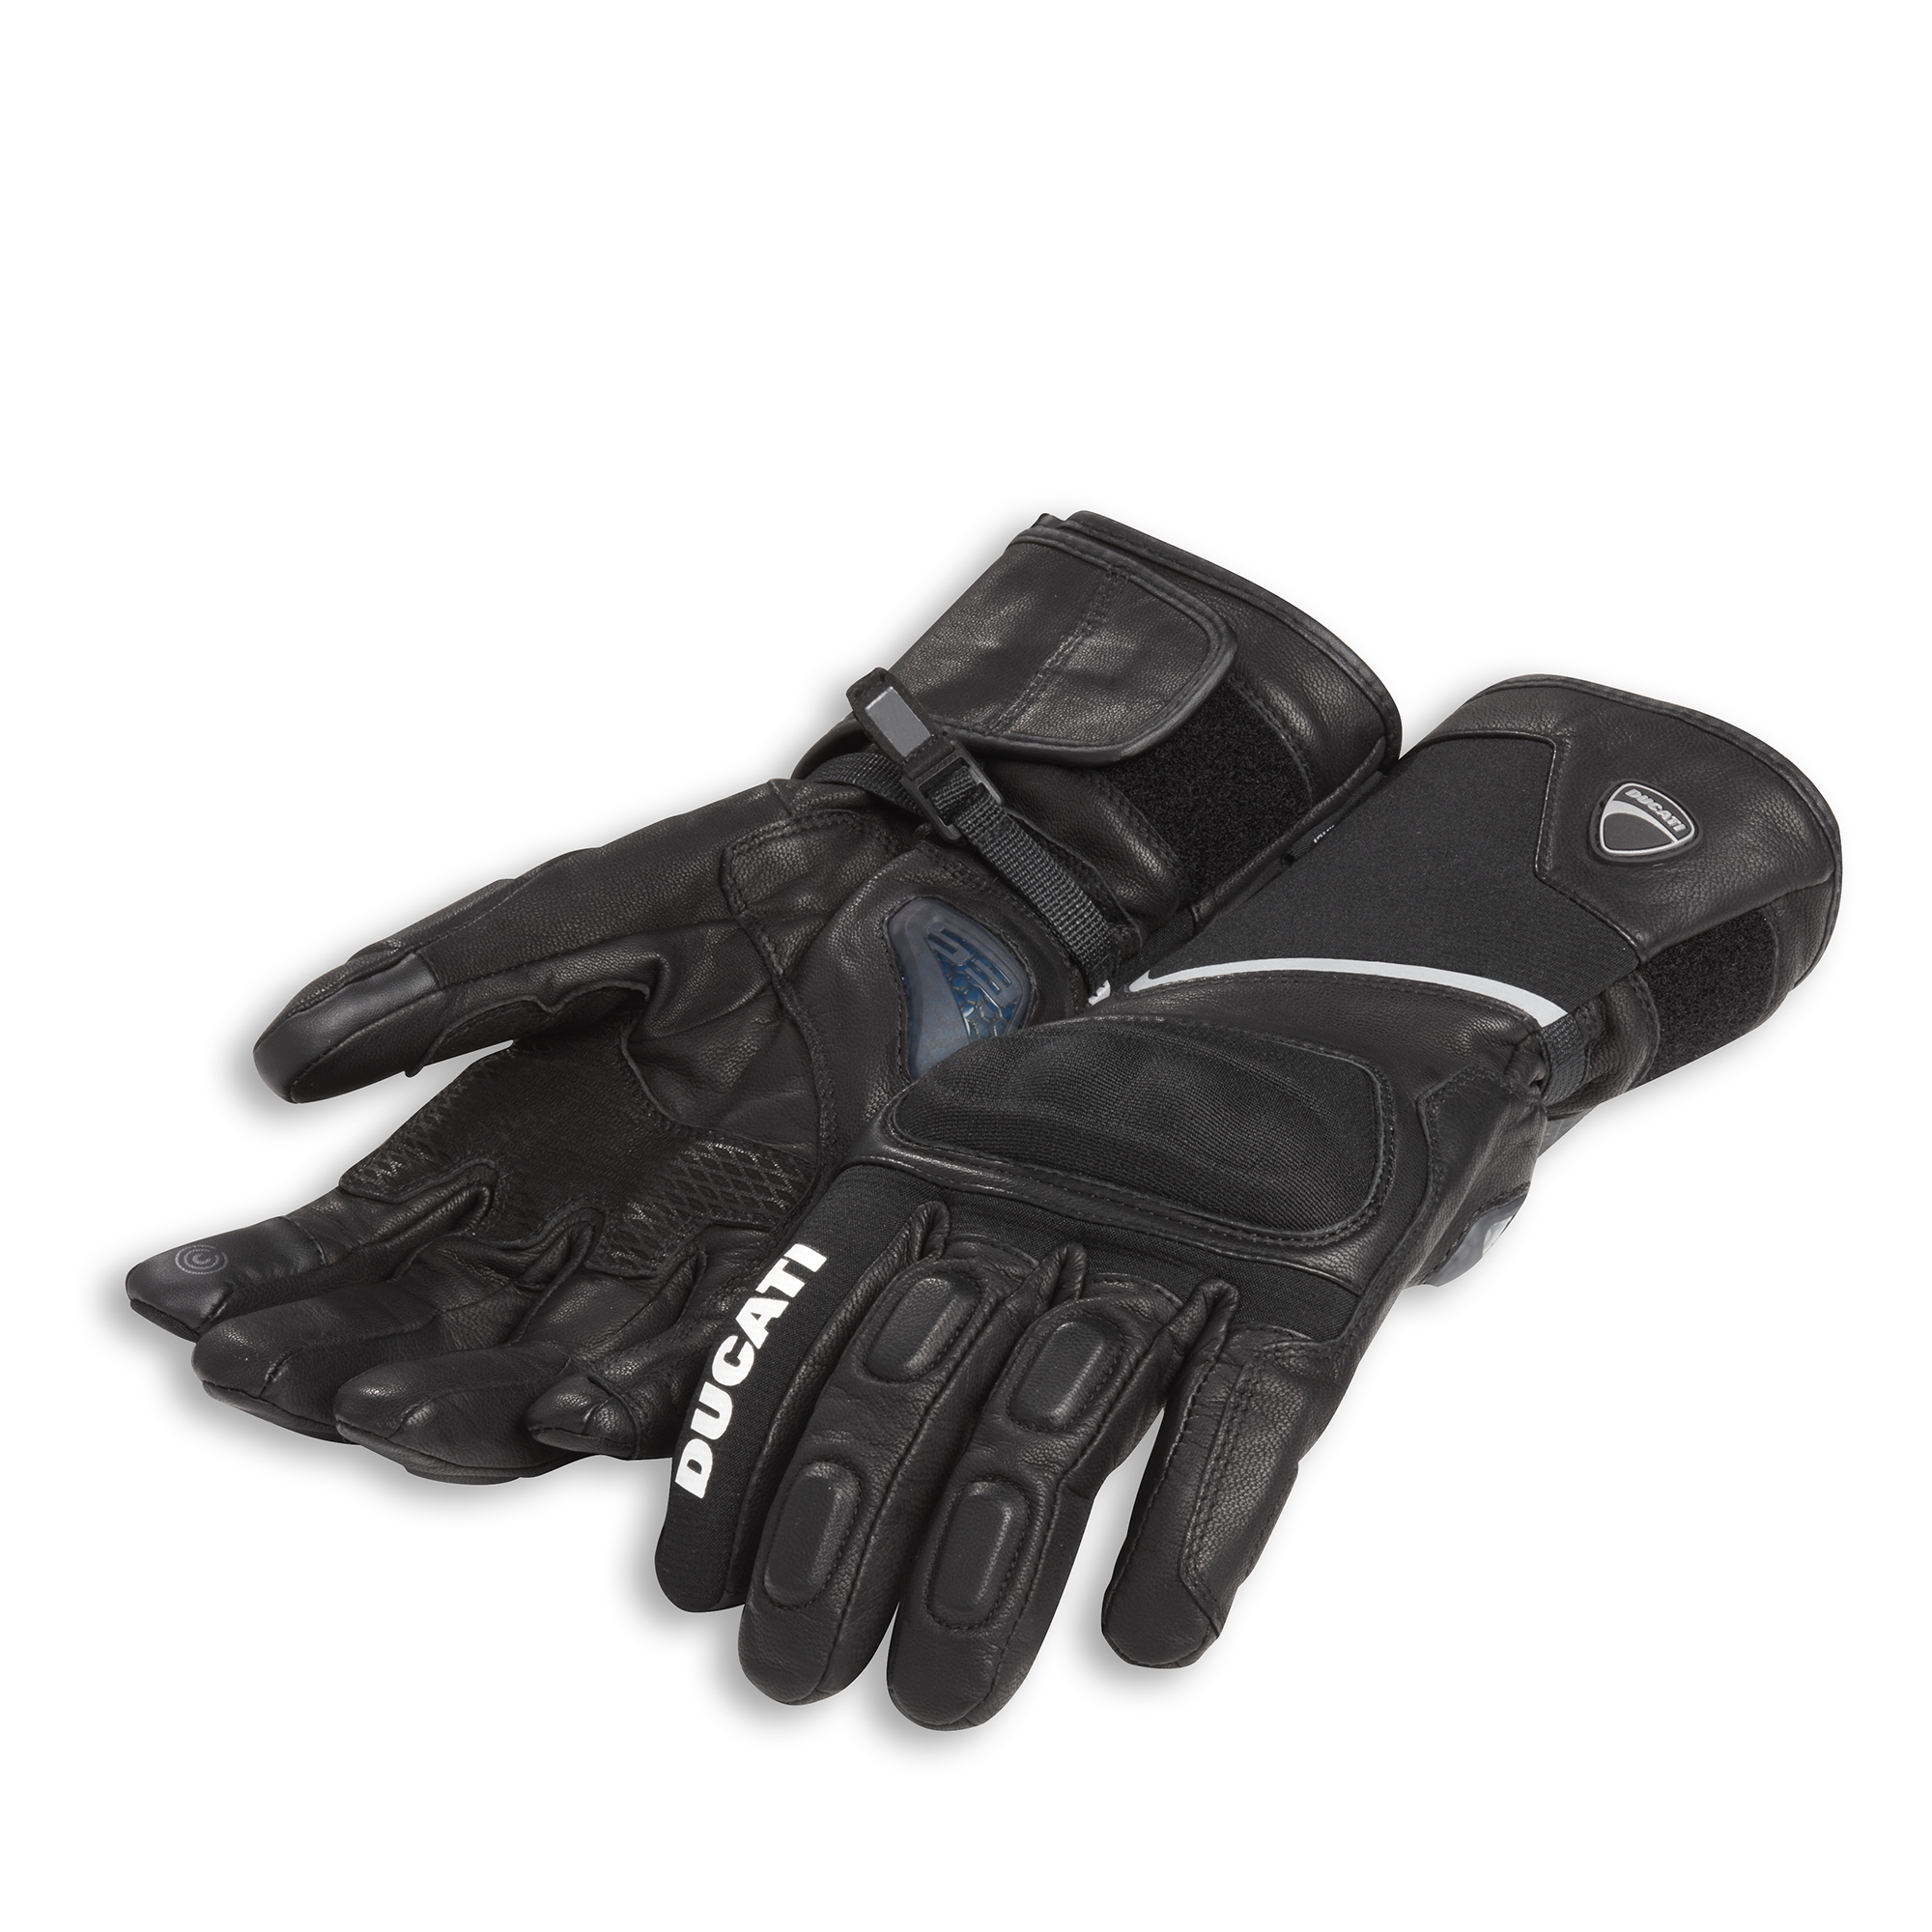 Tour C3 Fabric-leather gloves 981037082